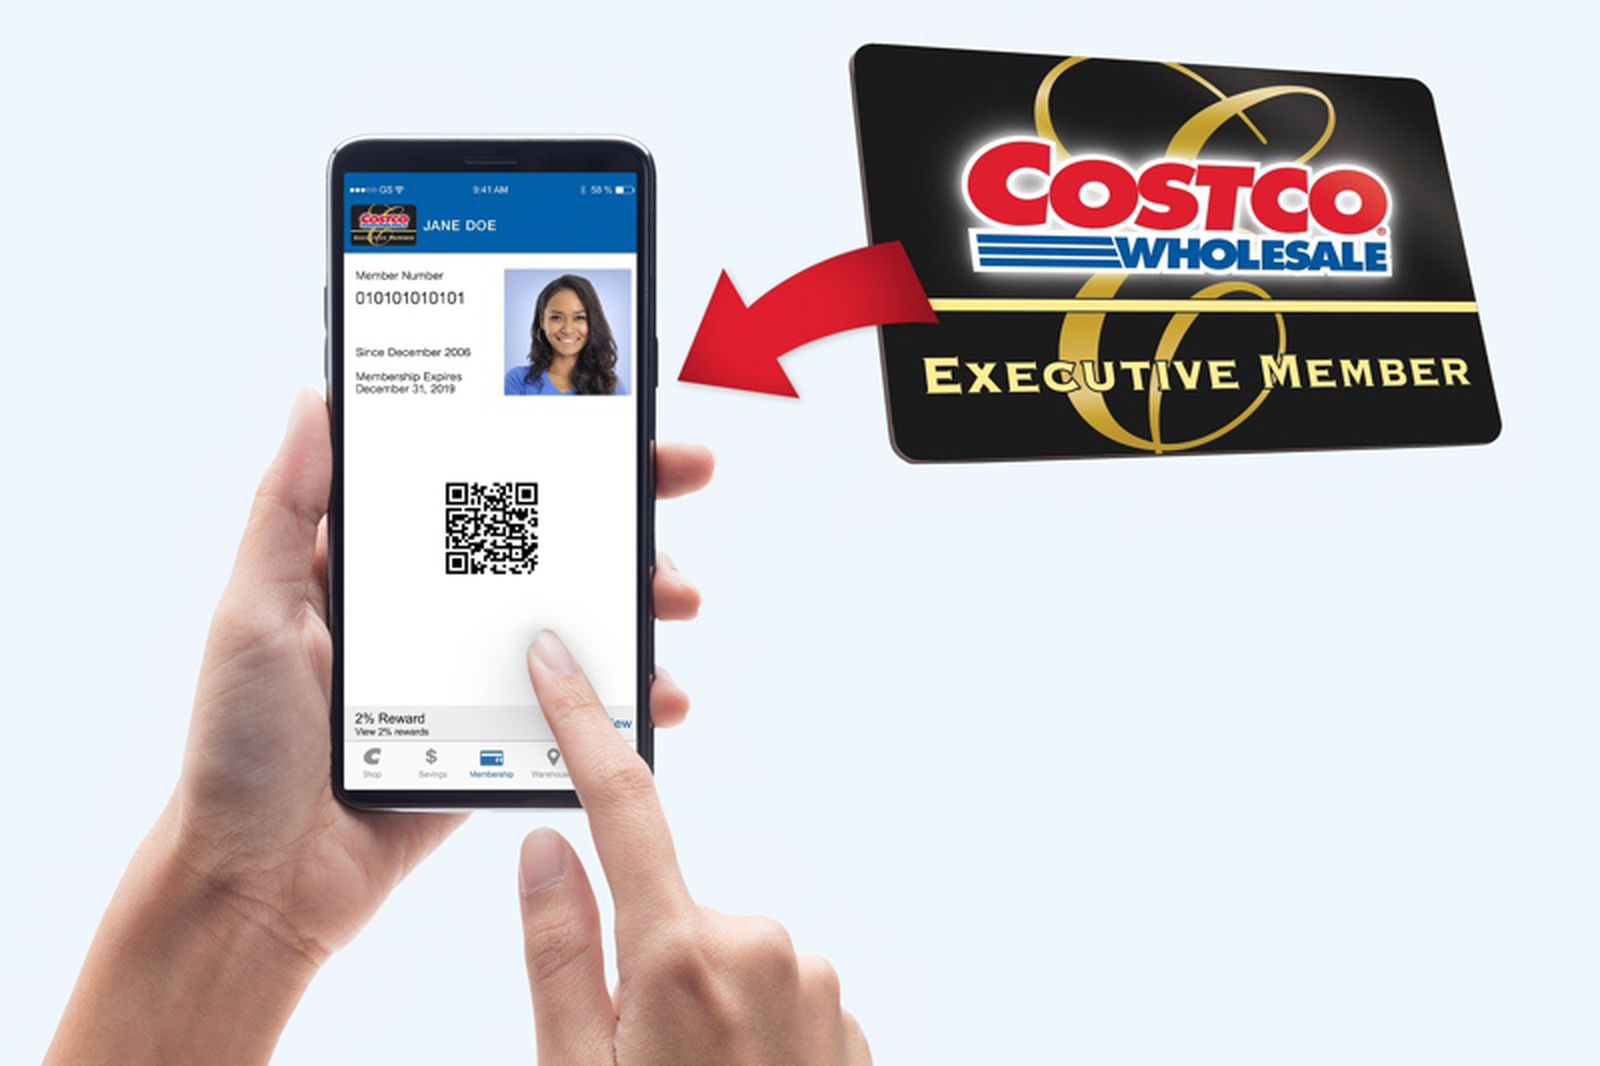 Costco App For Ios Now Supports Digital Membership Cards Allowing For Wallet Free Shopping Trips Macrumors The invitation email to join the family group. costco app for ios now supports digital